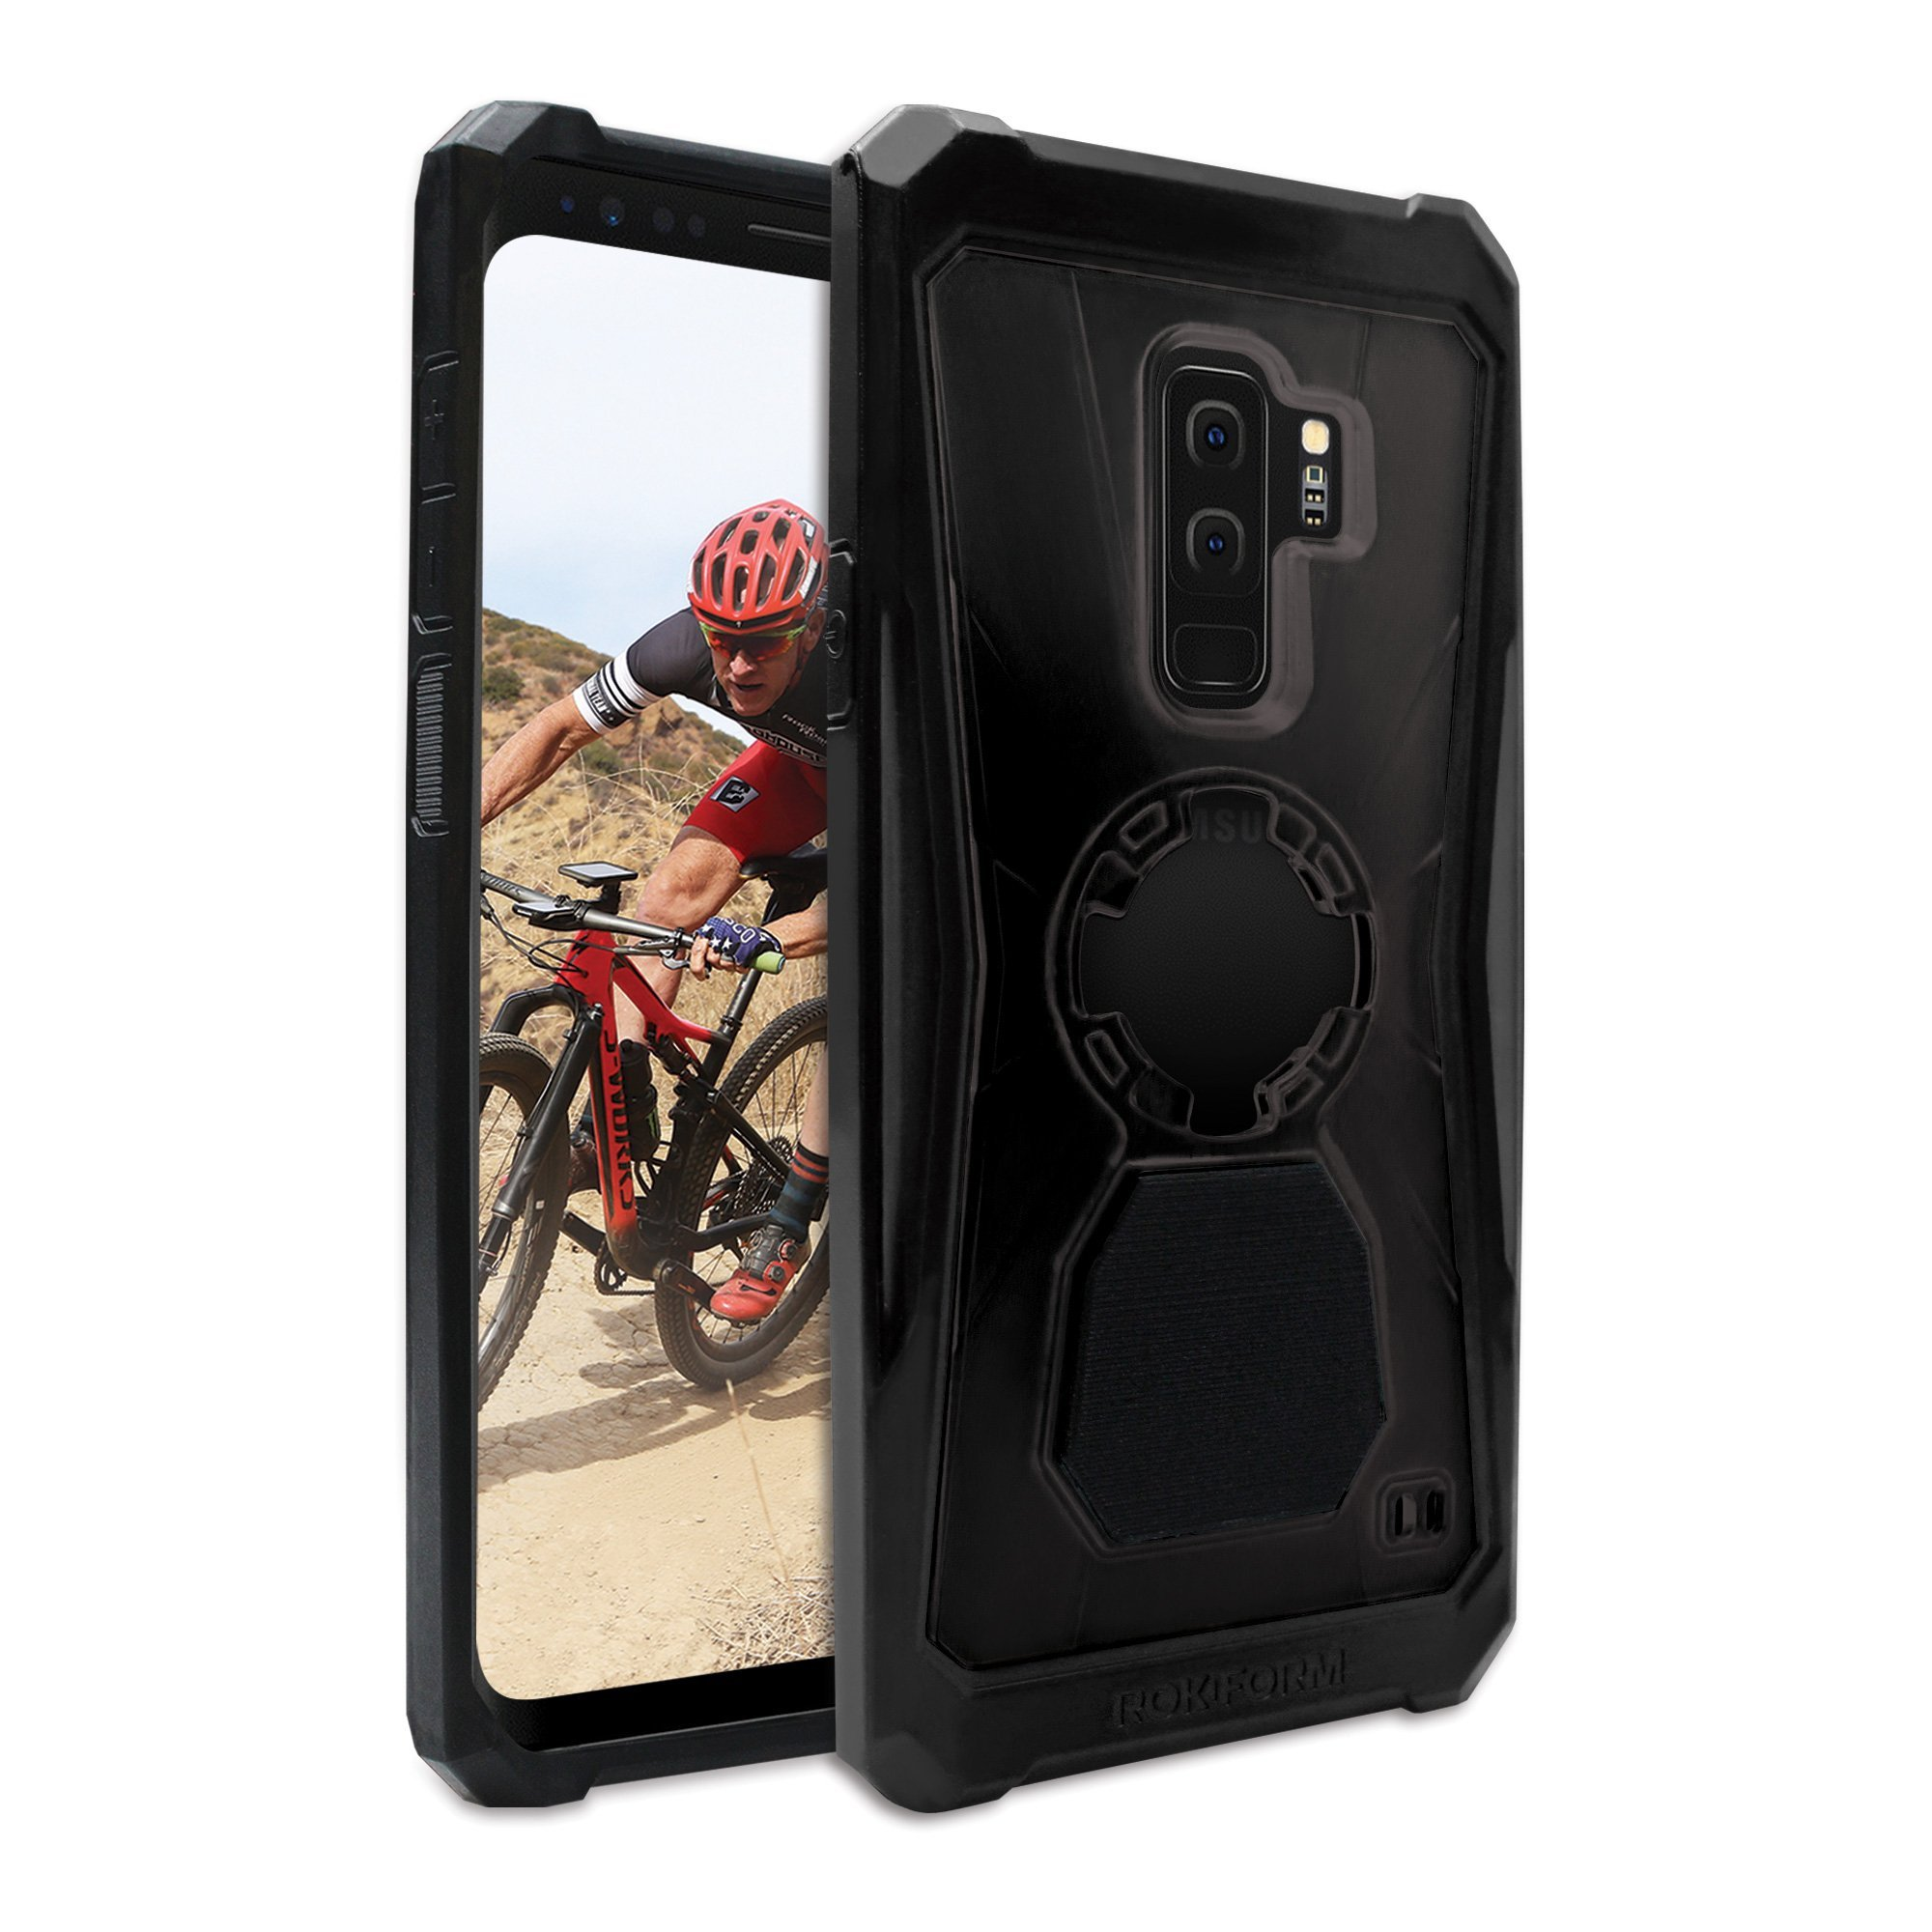 Rugged S Case Galaxy S9 PLUS